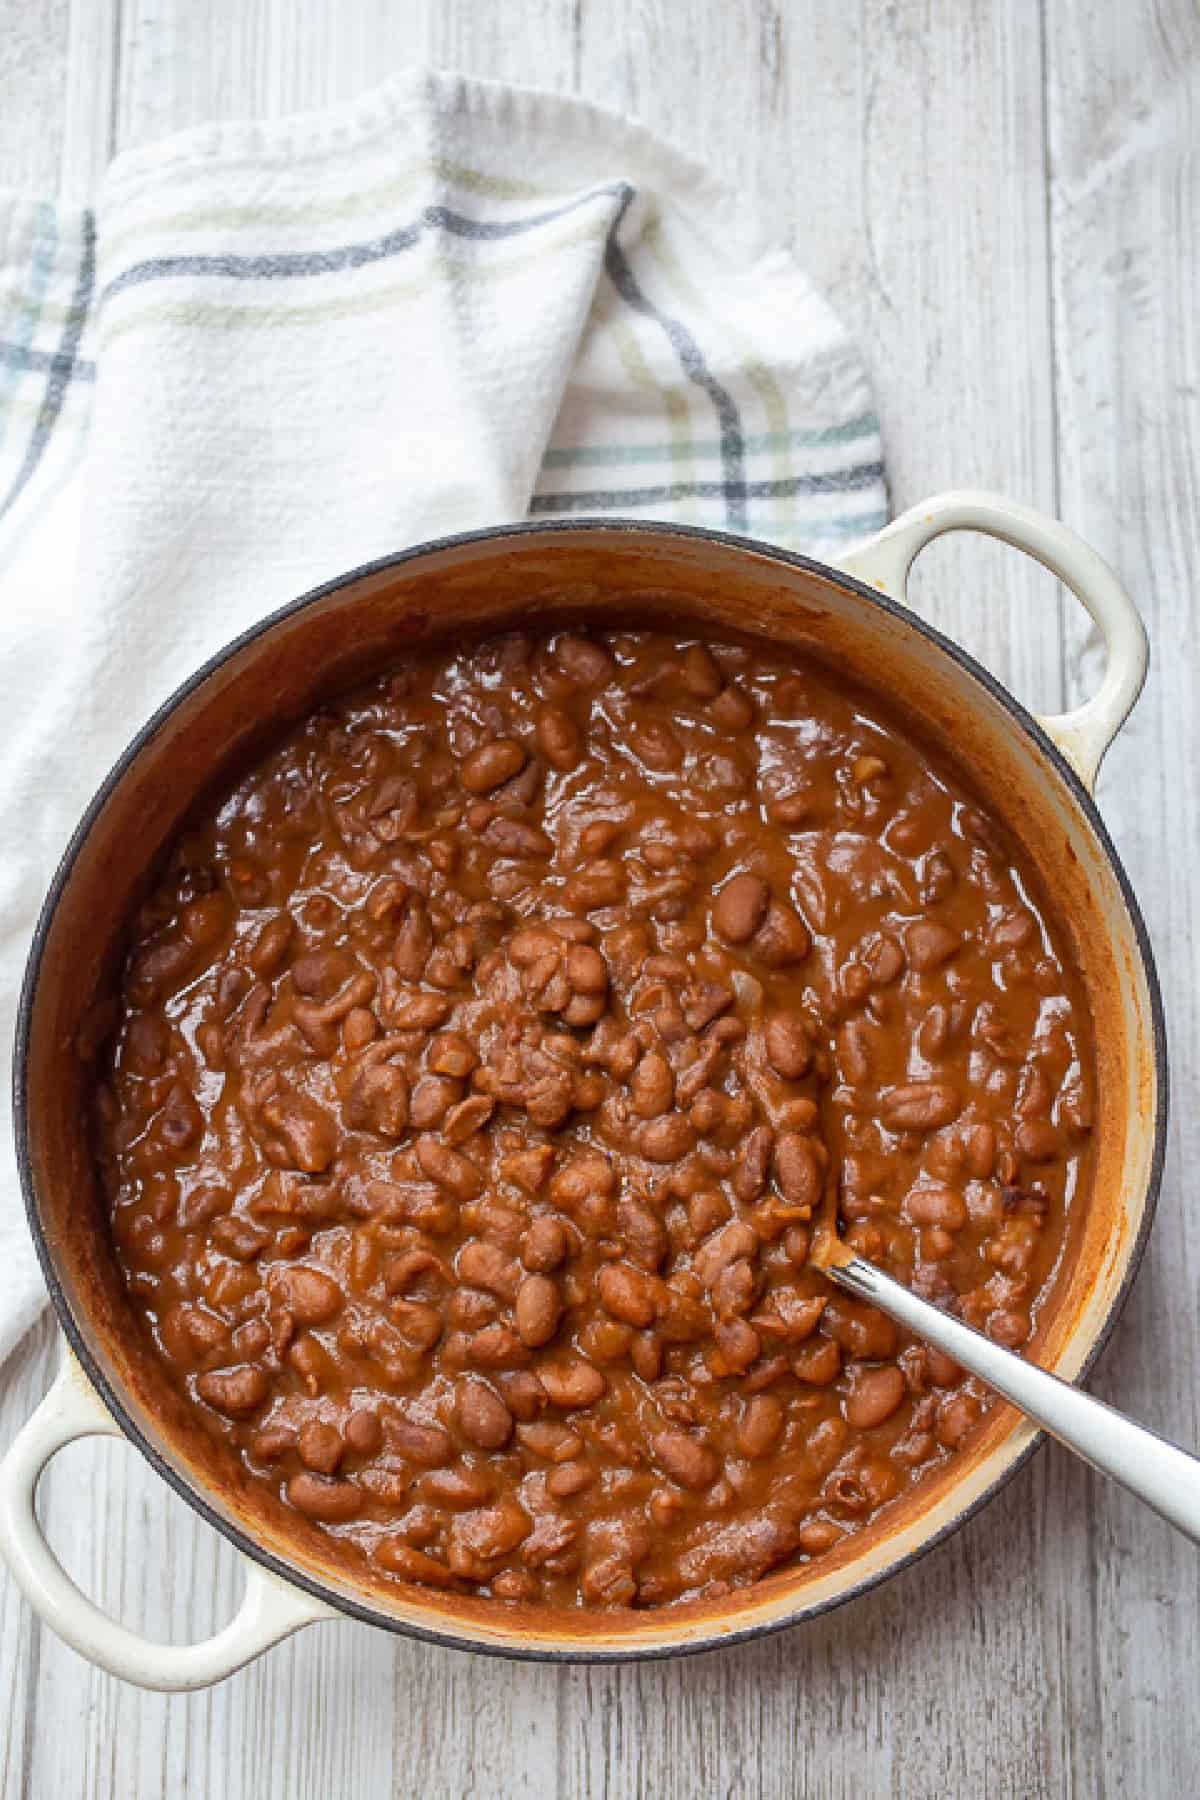 Cast iron pot of cooked easy baked beans recipe with a silver serving spoon sticking out and a white cloth towel with blue lines.